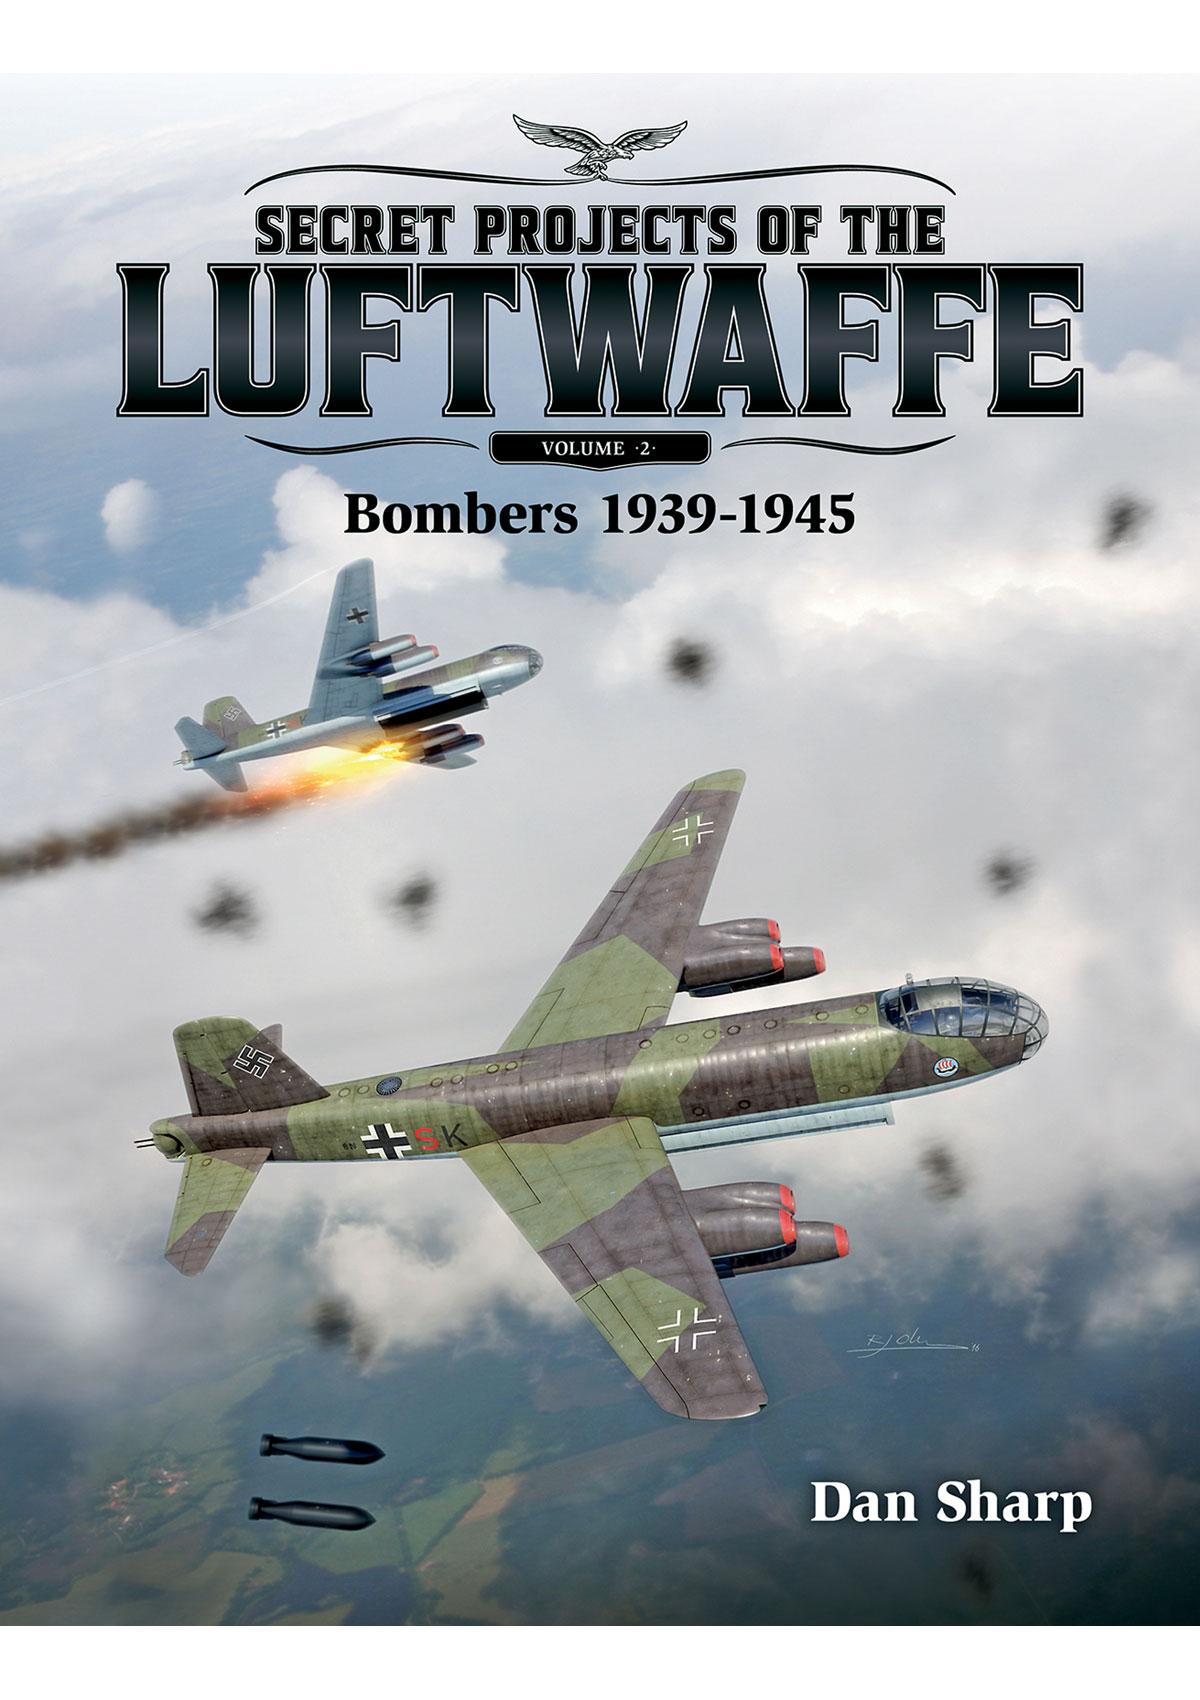 Secret Projects of the Luftwaffe - Vol 2 - Bombers 1939 - 1945